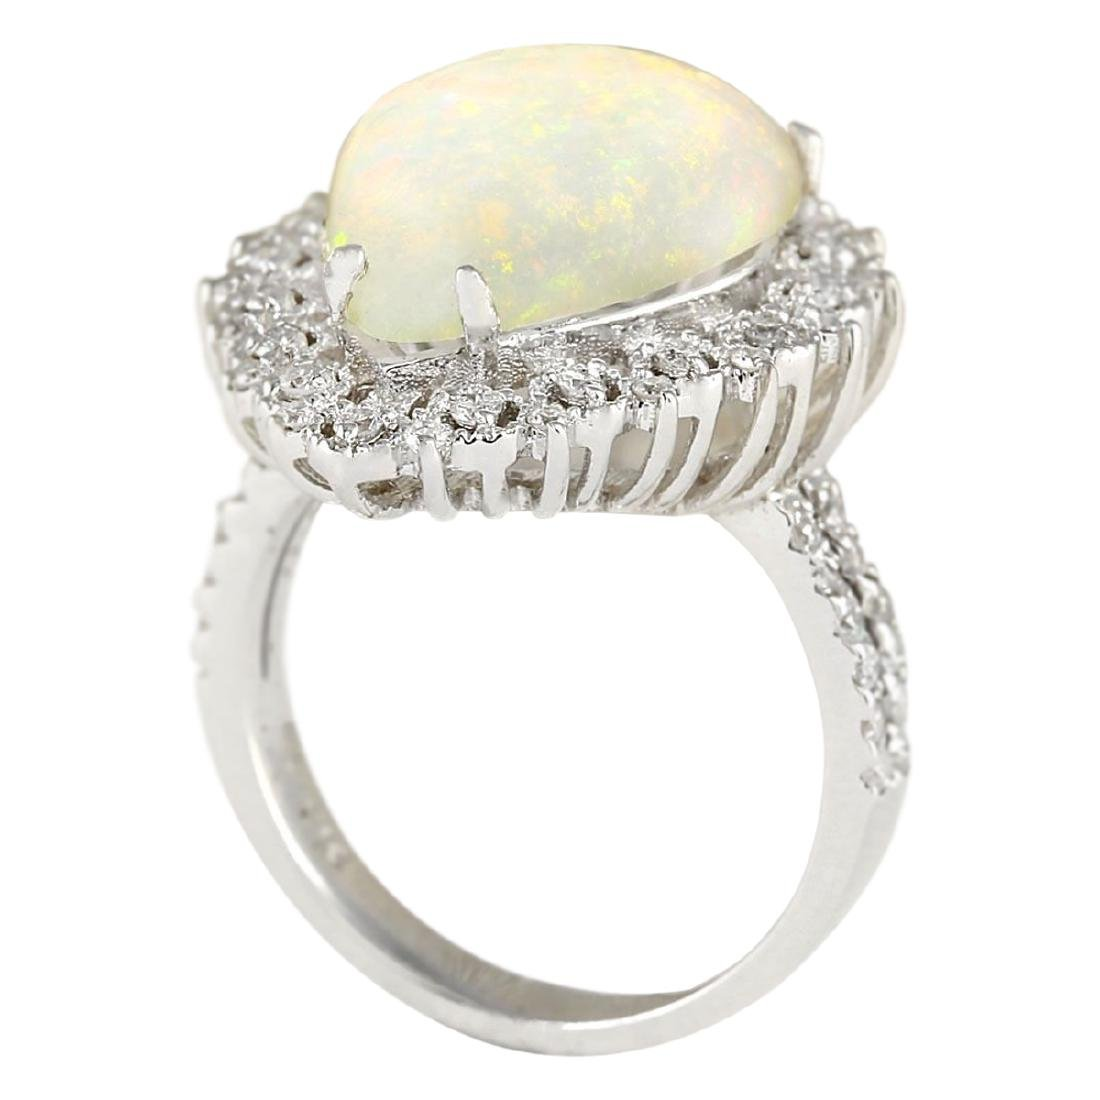 4.93 CTW Natural Opal And Diamond Ring In18K White Gold - 3